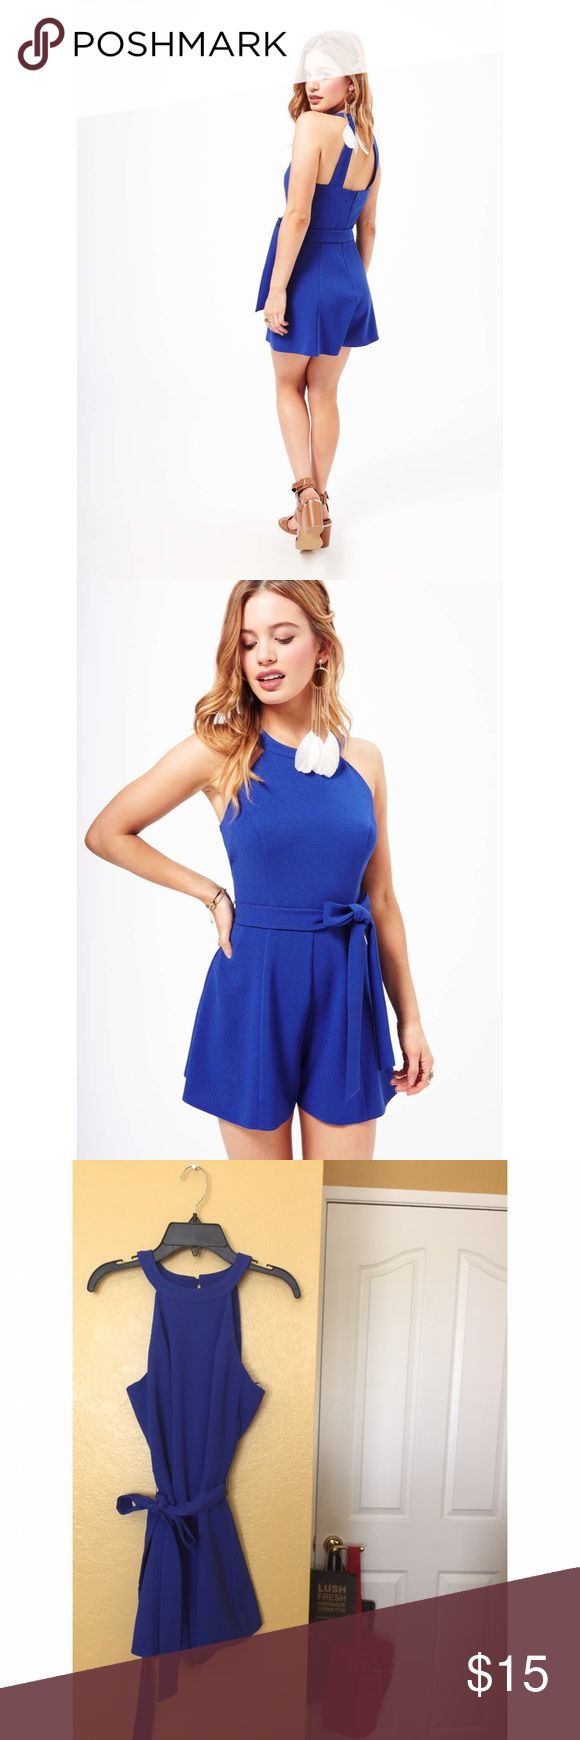 Miss Selfridge Petite Blue 90's Playsuit Romper The lightweight fabric and flippy short style legs make this petites blue playsuit a winner for the summer! Team with sandals to complete the look. Zipper back. Detachable waist tie. One zips of the clasp is coming loose (as pictured), just needs to be sewn down. In excellent used condition. No modeling or try on's. Miss Selfridge Pants Jumpsuits & Rompers